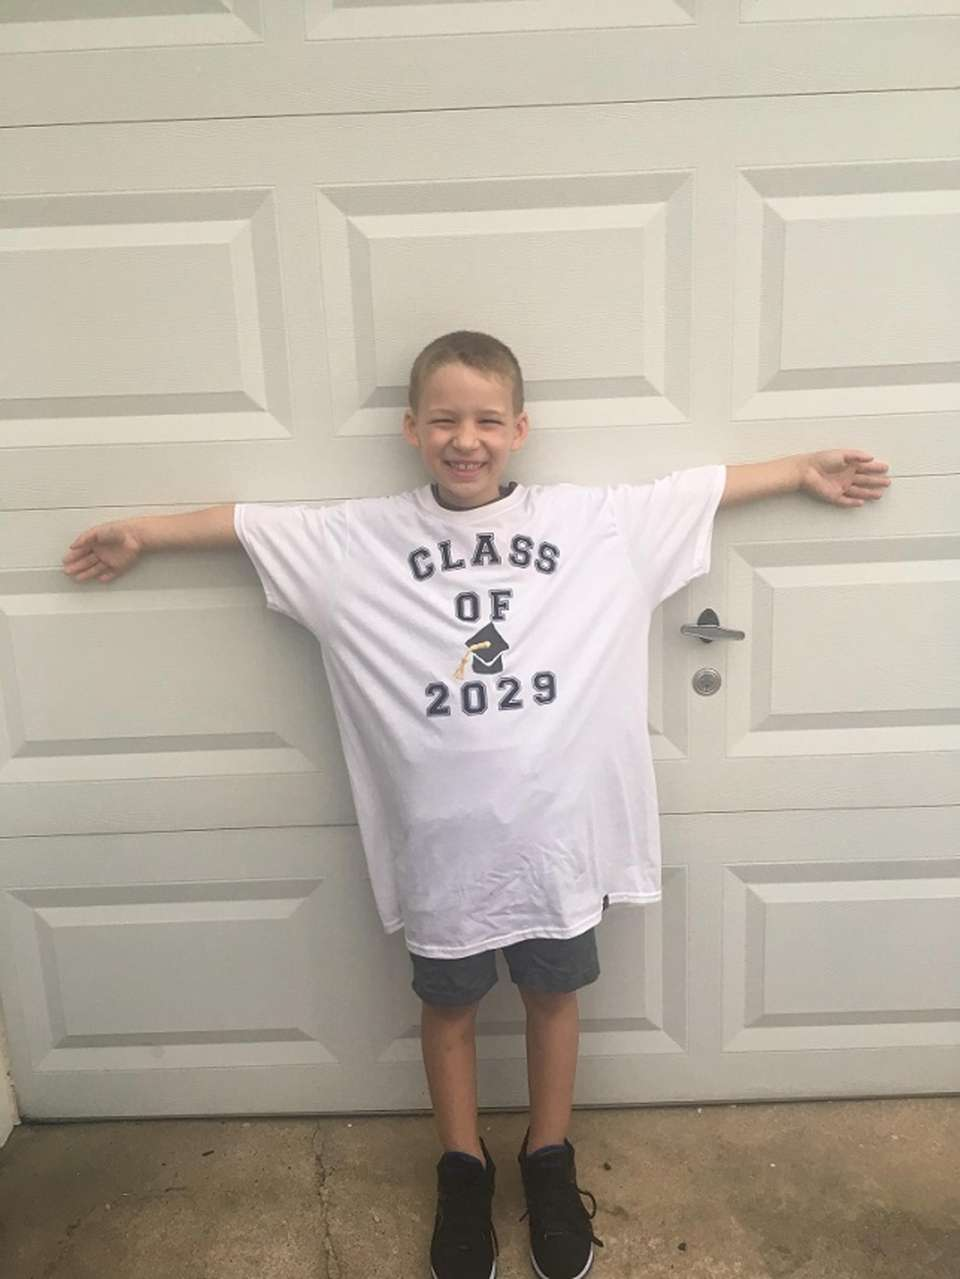 Robert heading off to 1st grade 9/6/17! #sachemstrong